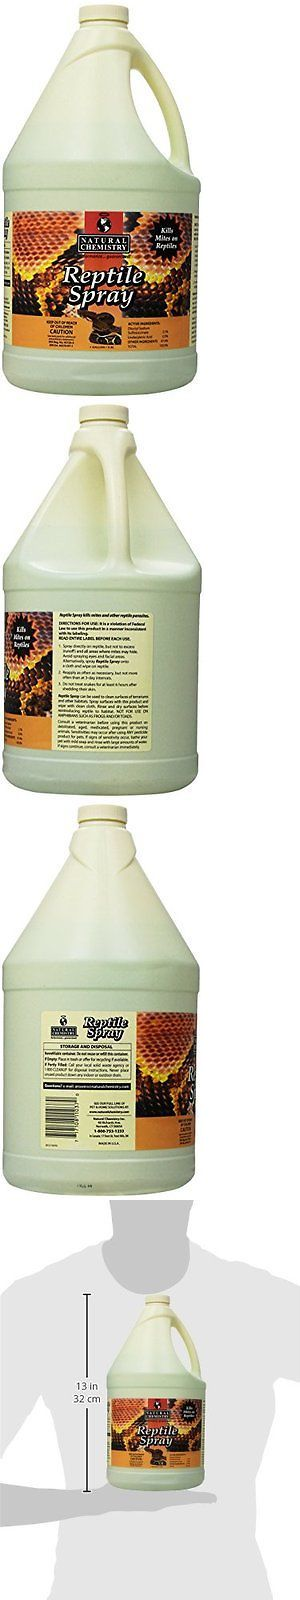 Reptile Supplies 1285: Natural Chemistry Reptile Relief Spray For Pets, 1-Gallon -> BUY IT NOW ONLY: $40.7 on eBay!